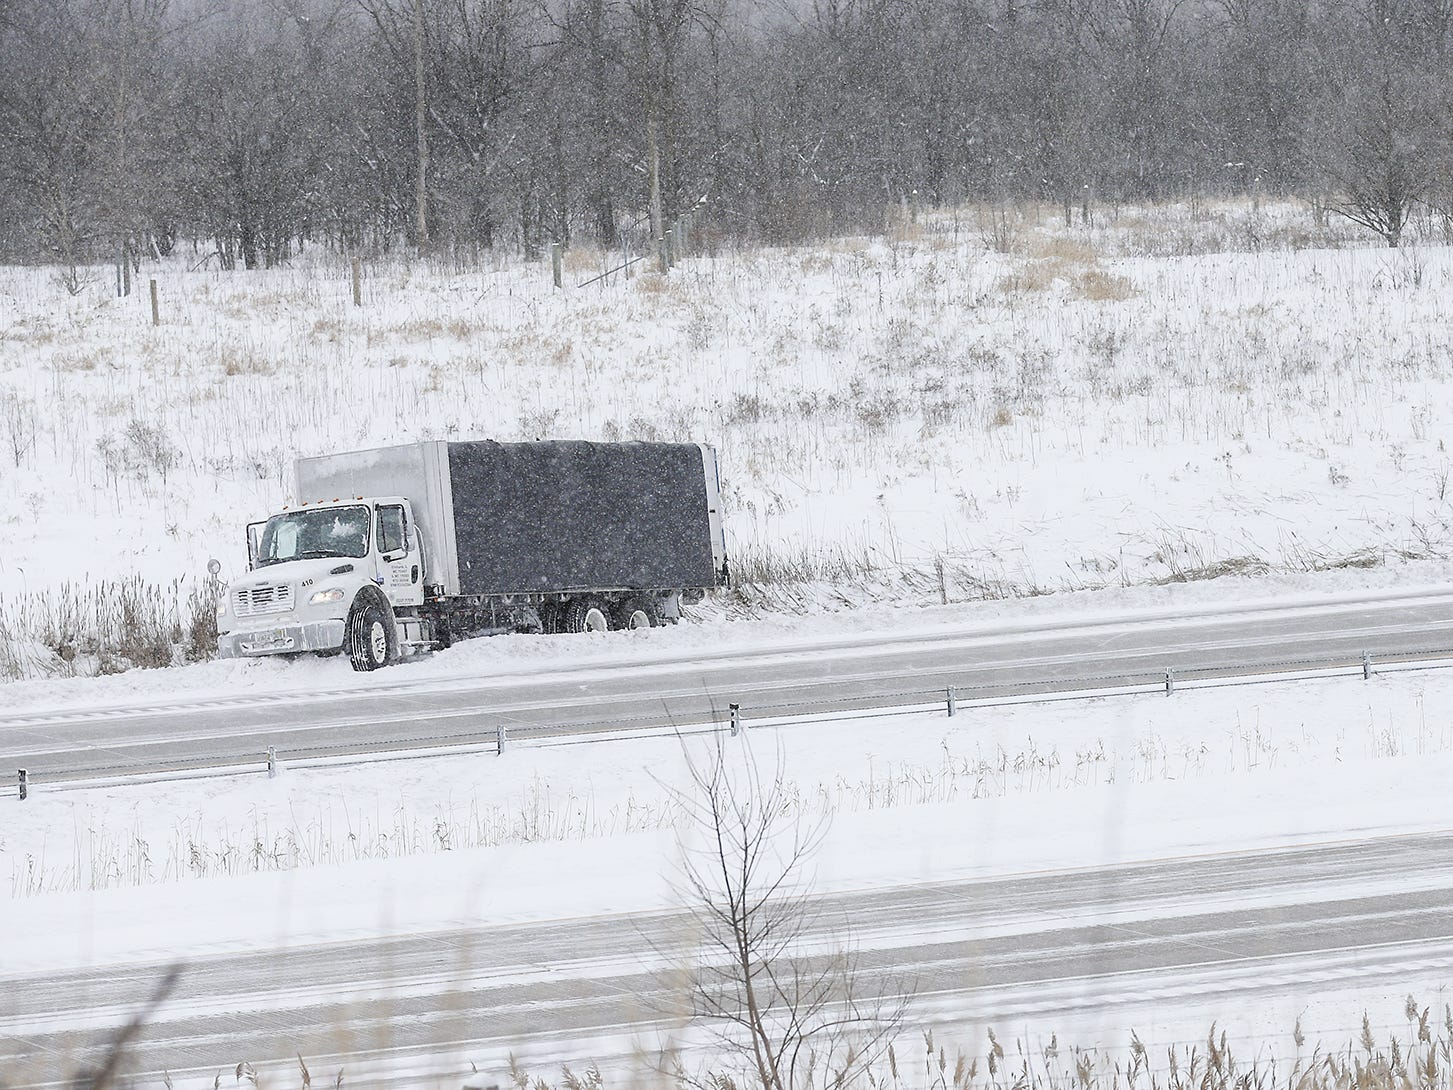 A Fond du Lac County Sheriff's officer tends to a box truck in the ditch Monday, Jan. 28, 2019, on I-41 near Main Street during a snow storm that hampered travel and closed businesses and schools in the Fond du Lac, Wisconsin area. This was the Fond du Lac areas second snow storm in five days.